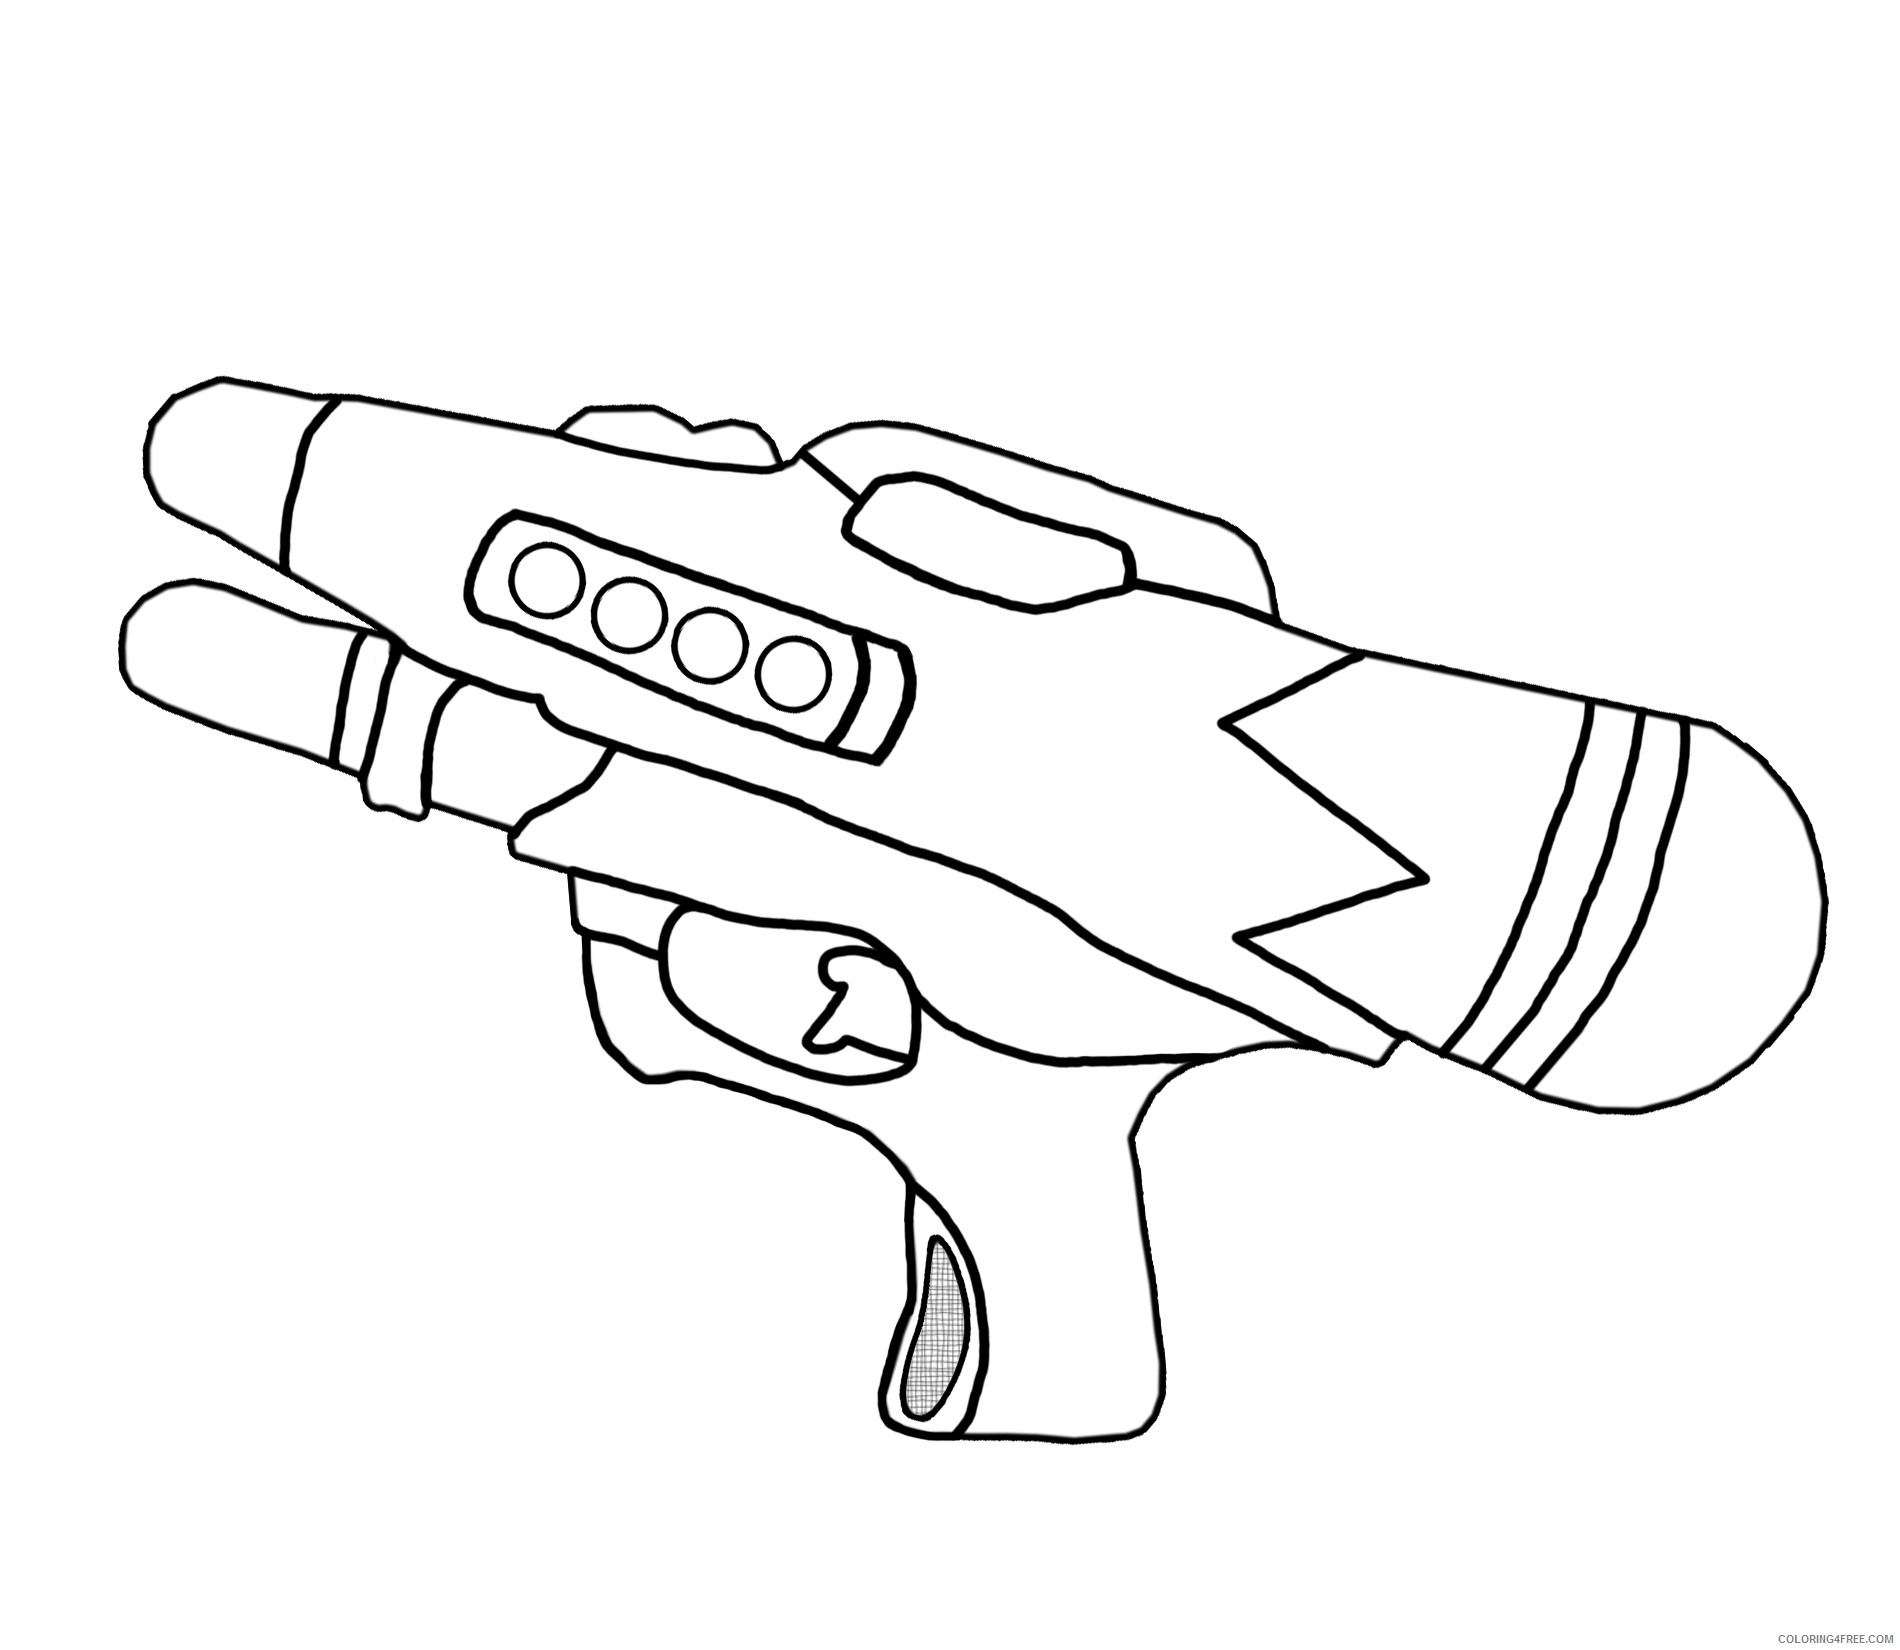 water gun coloring pages for kids Coloring4free